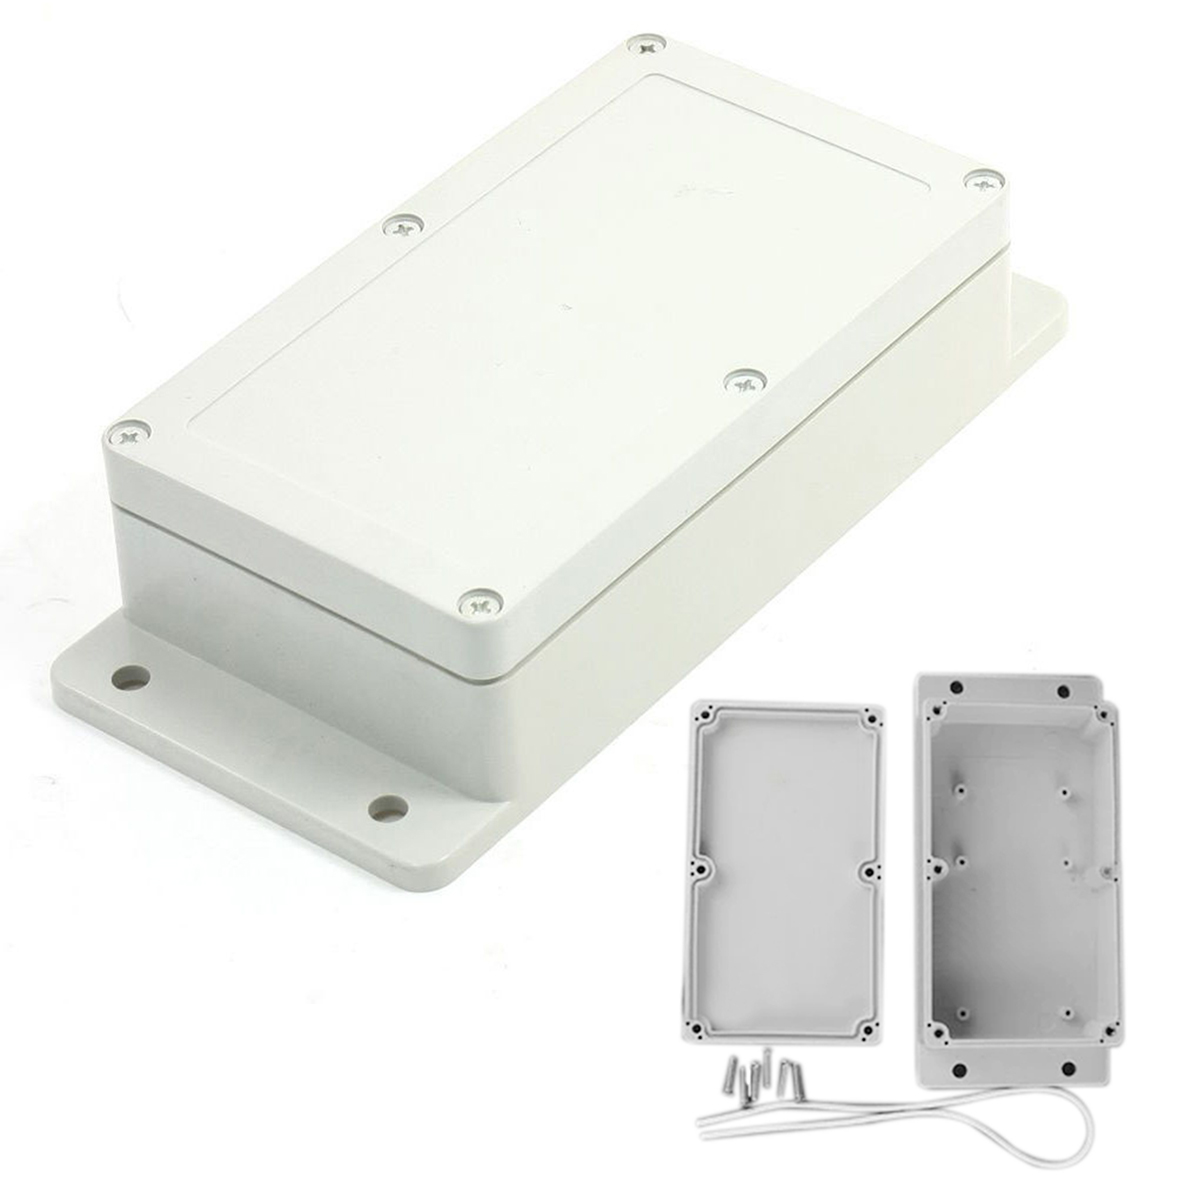 Waterproof Power Junction Box White Plastic Enclosure Case 158mmx90mmx46mm For Electronic Project Instrument 1pc waterproof enclosure box plastic electronic project instrument case 200x120x75mm